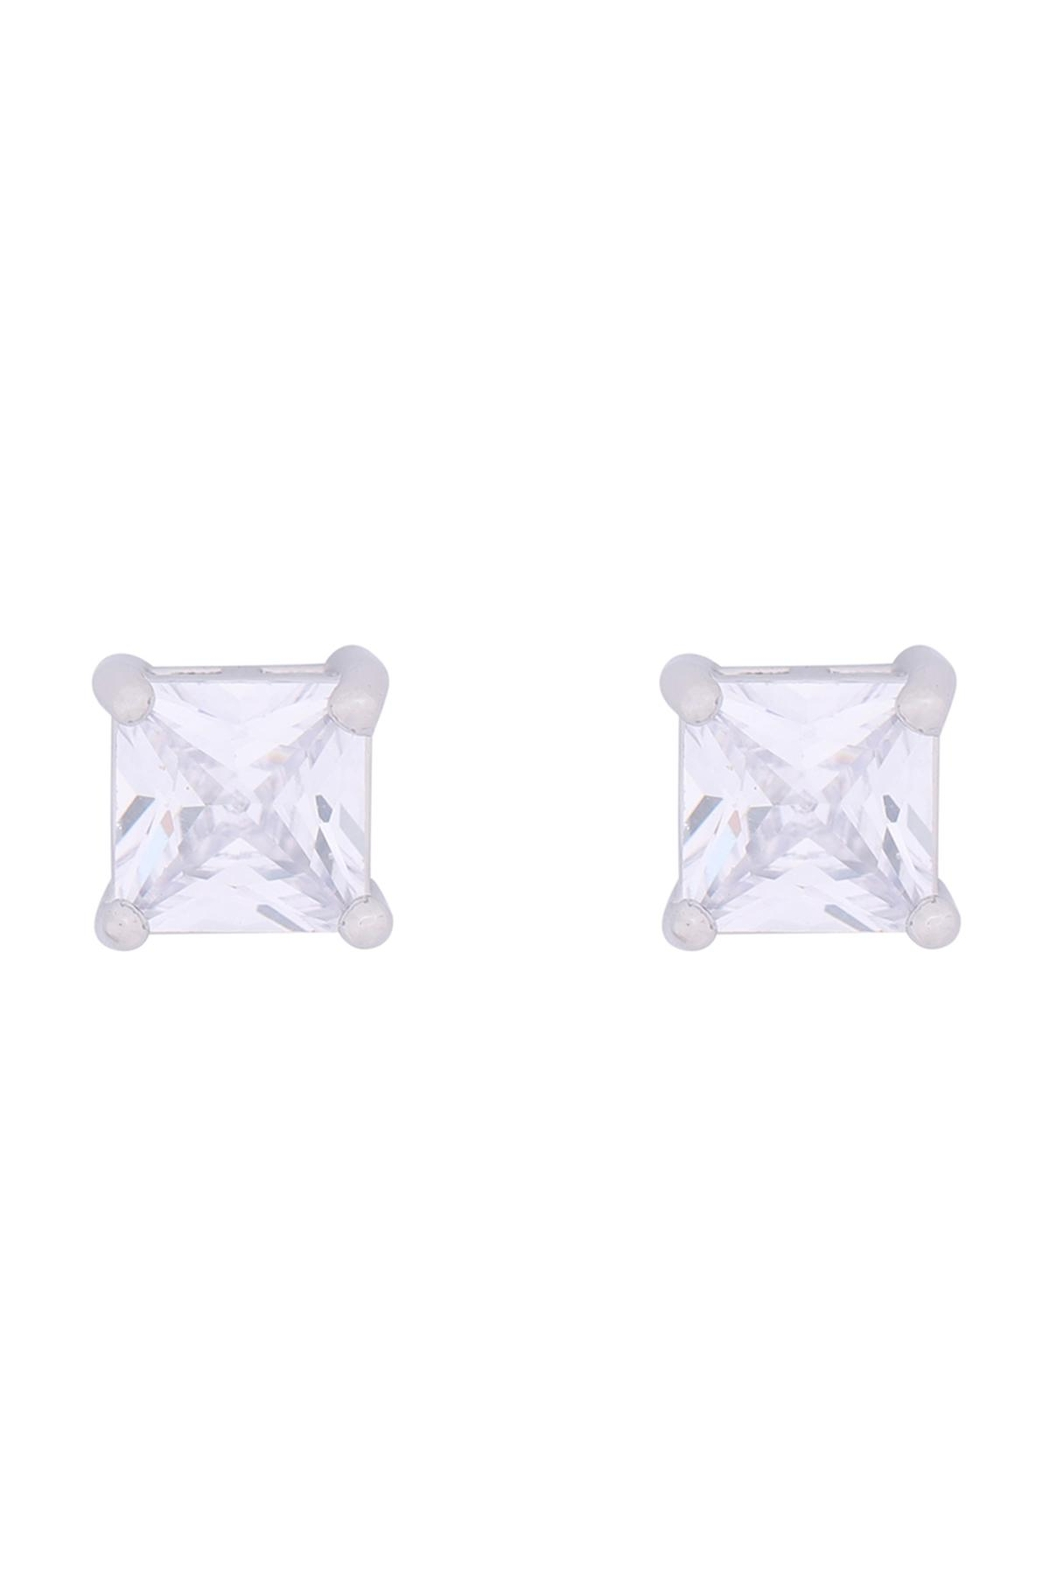 Riah Fashion Org-6mm-Square-Cubic-Zirconia-Stud-Earrings - Front Cropped Image